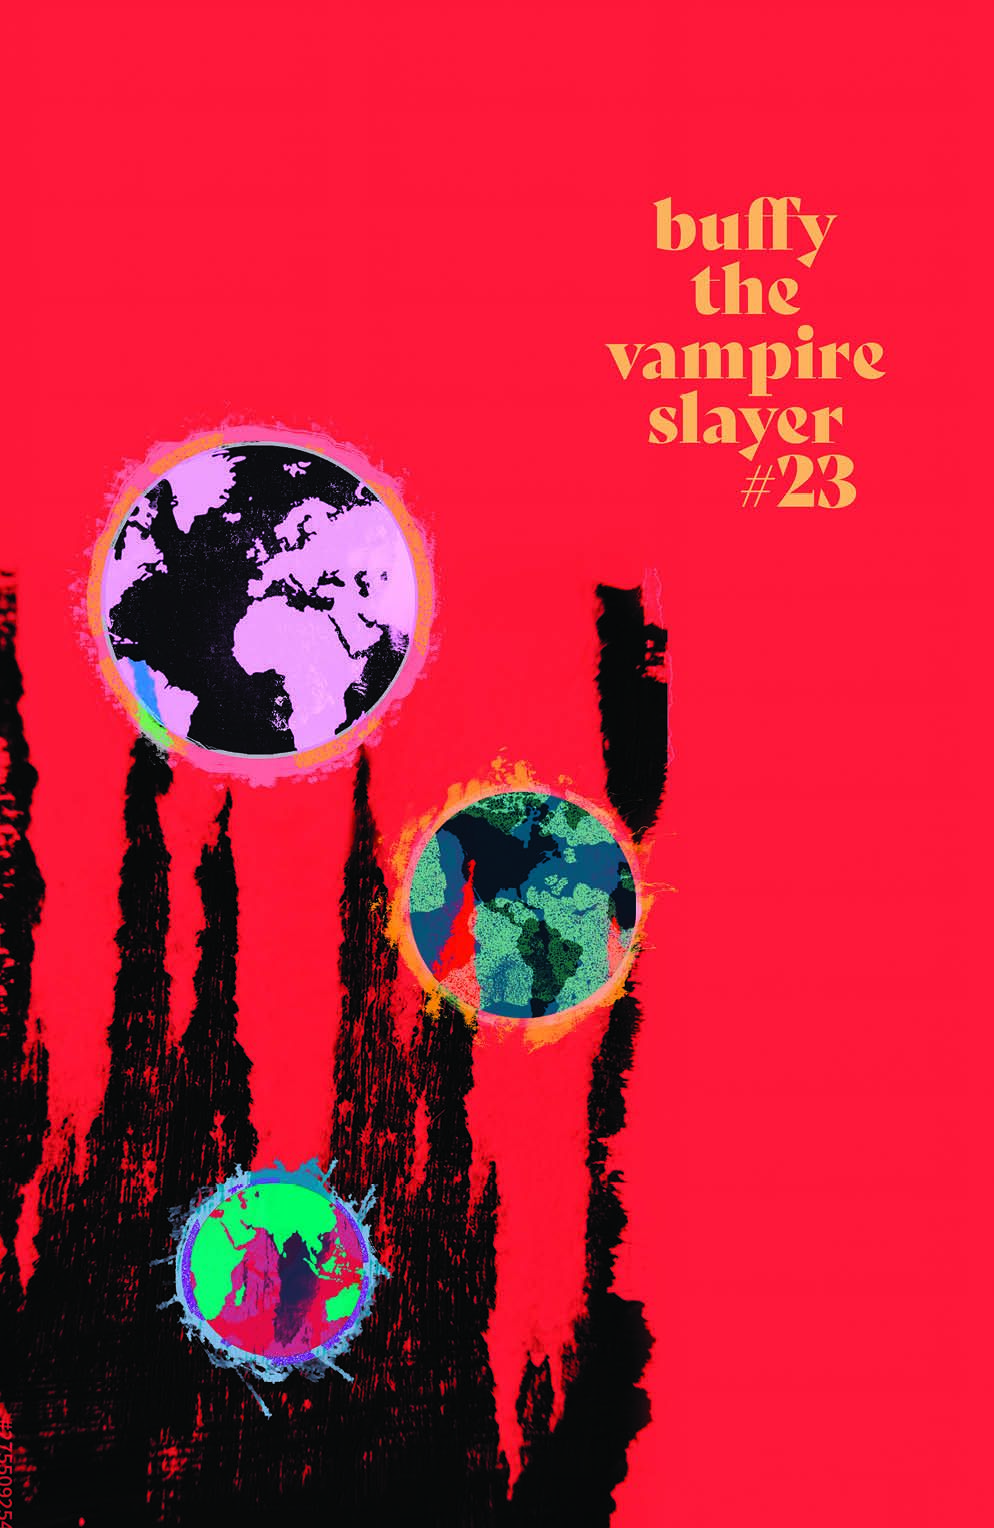 Buffy_023_Cover_C_RingofFire_LOW ComicList Previews: BUFFY THE VAMPIRE SLAYER #23